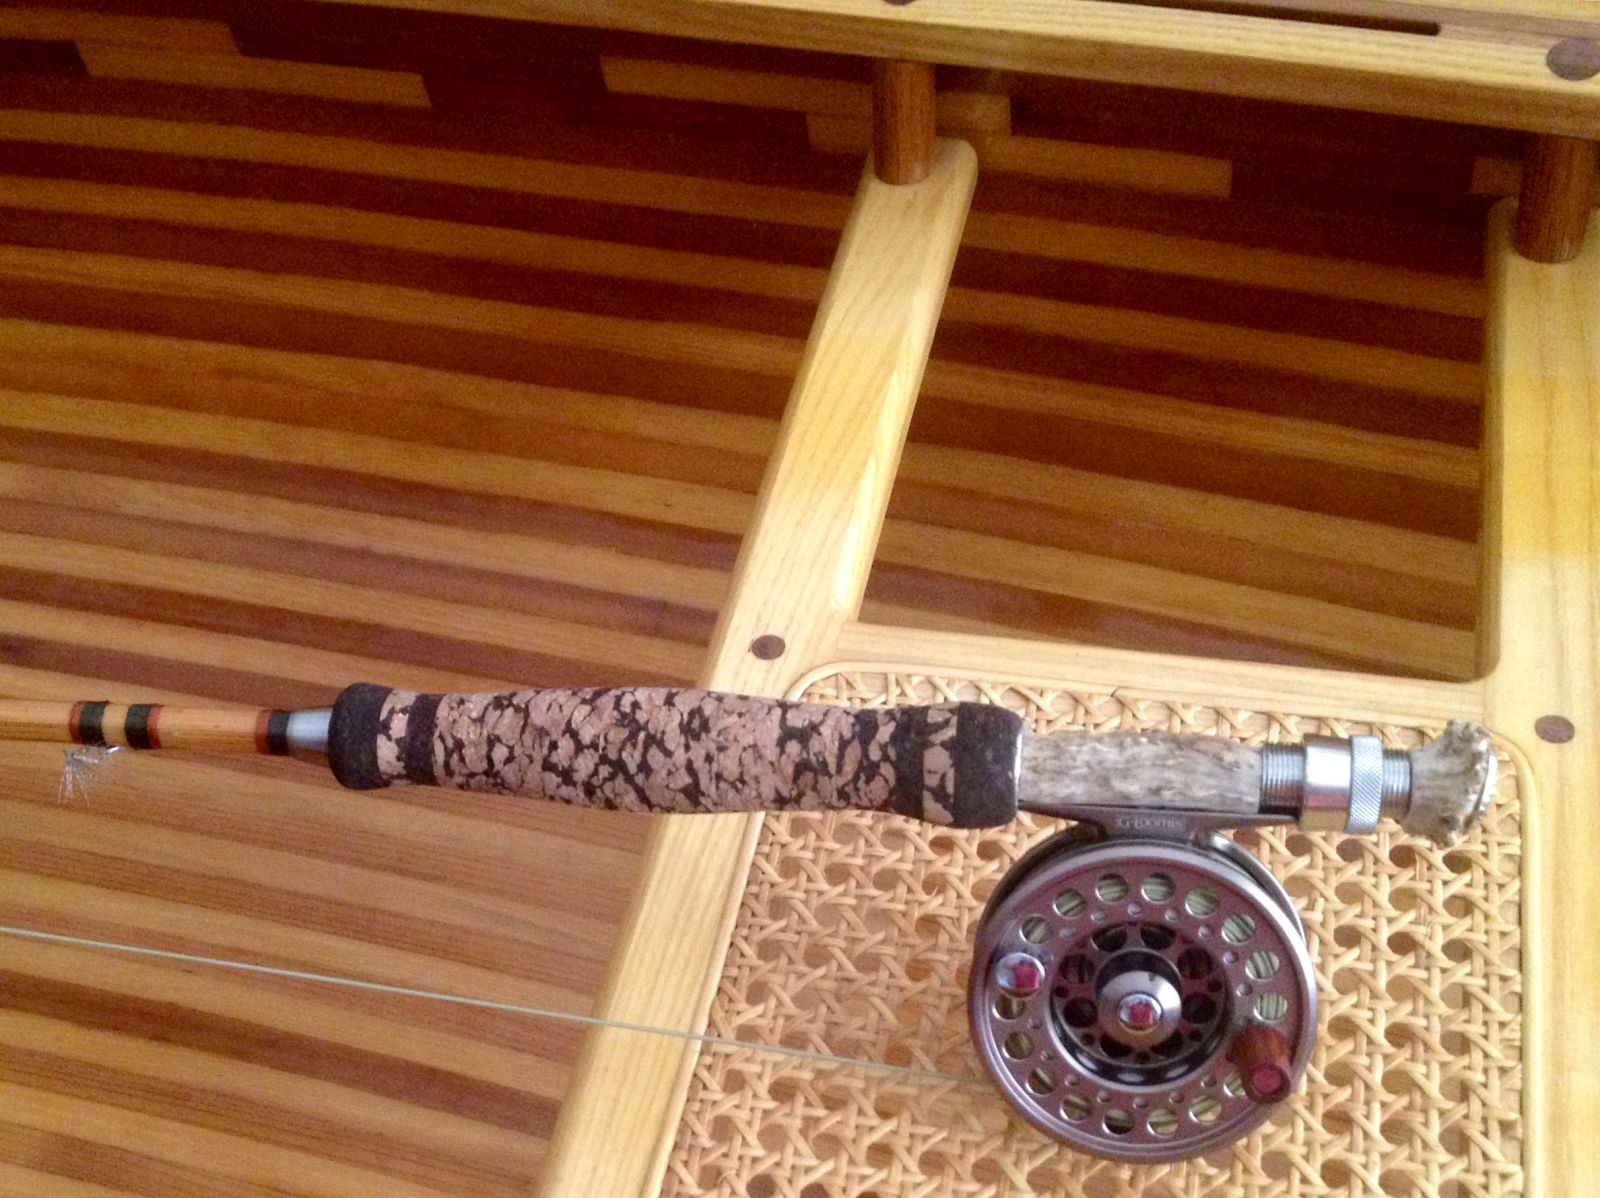 Bamboo fly rod with deer antler reel seat.